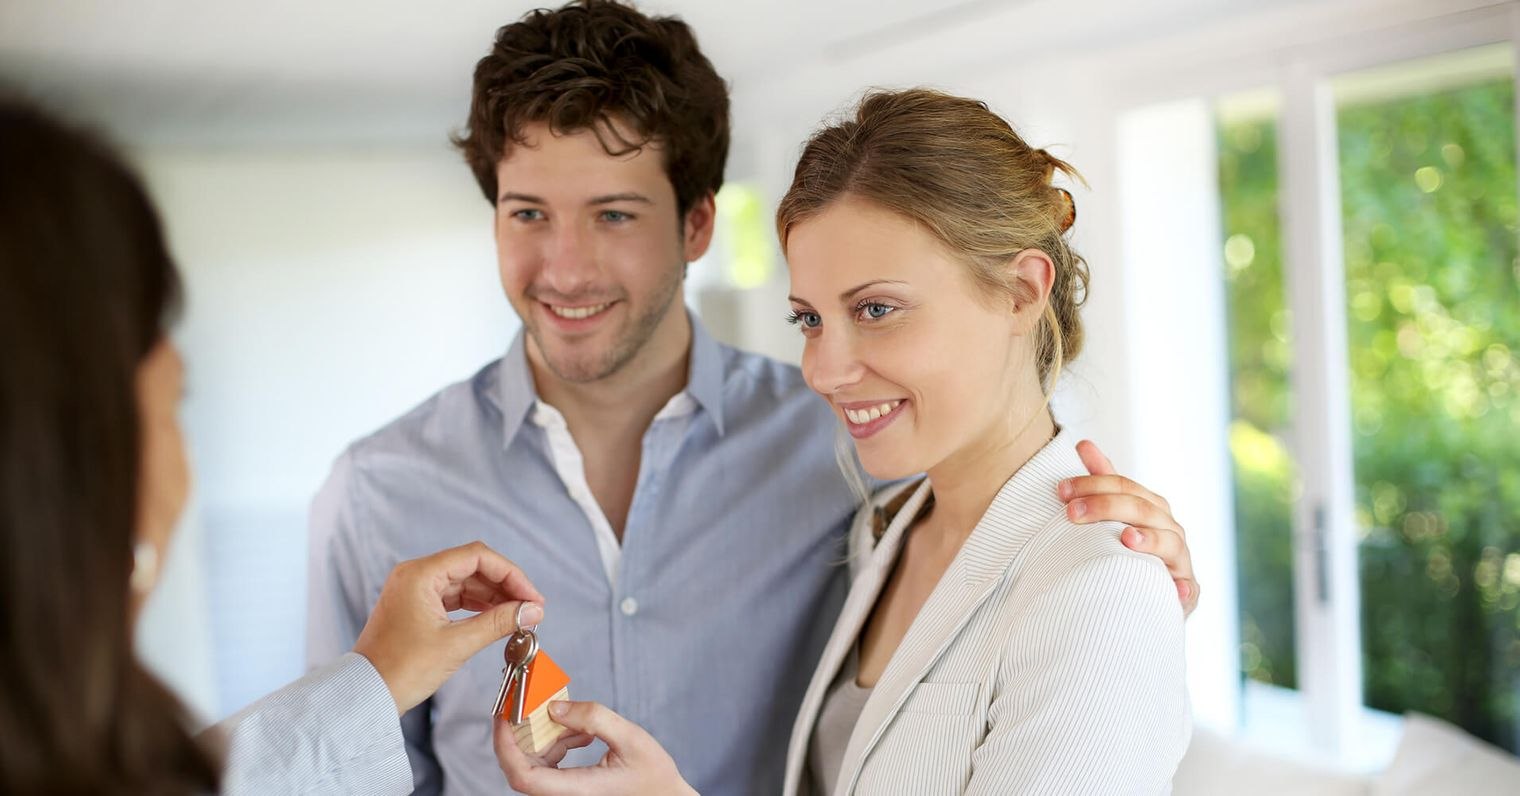 How to turn your home into an investment property